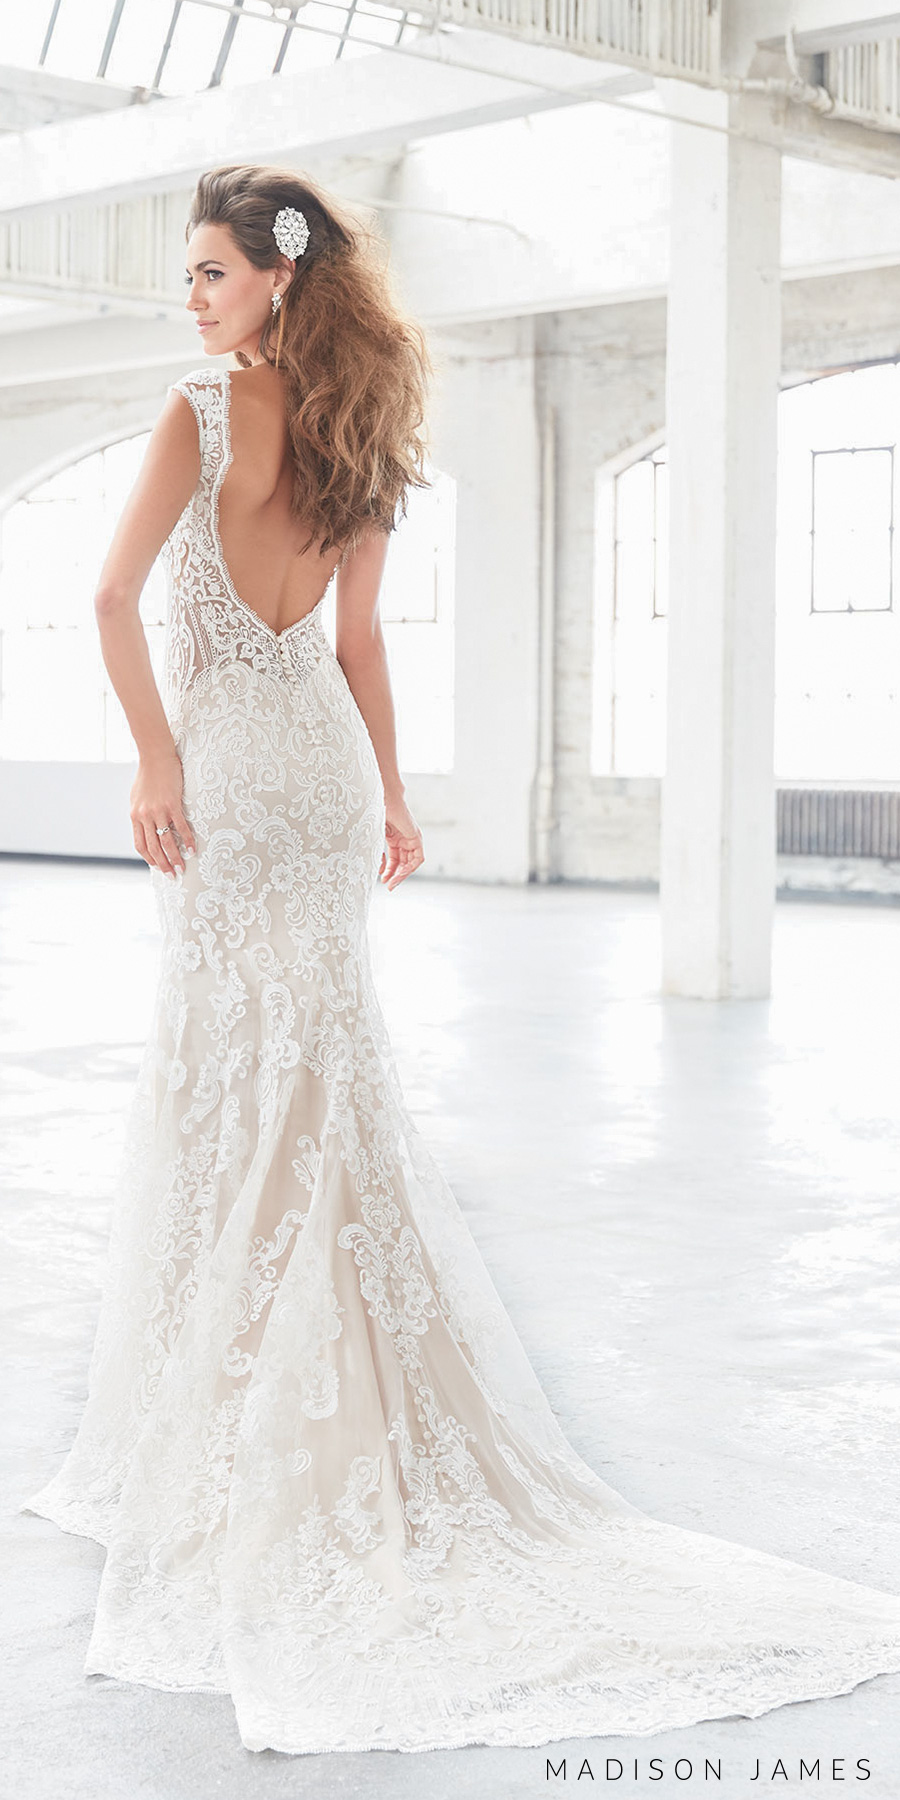 madison james spring 2017 bridal sleeveless thick strap full embroidered lace elegant sexy sheath fit and flare wedding dress open low back chapel train (mj310) bv